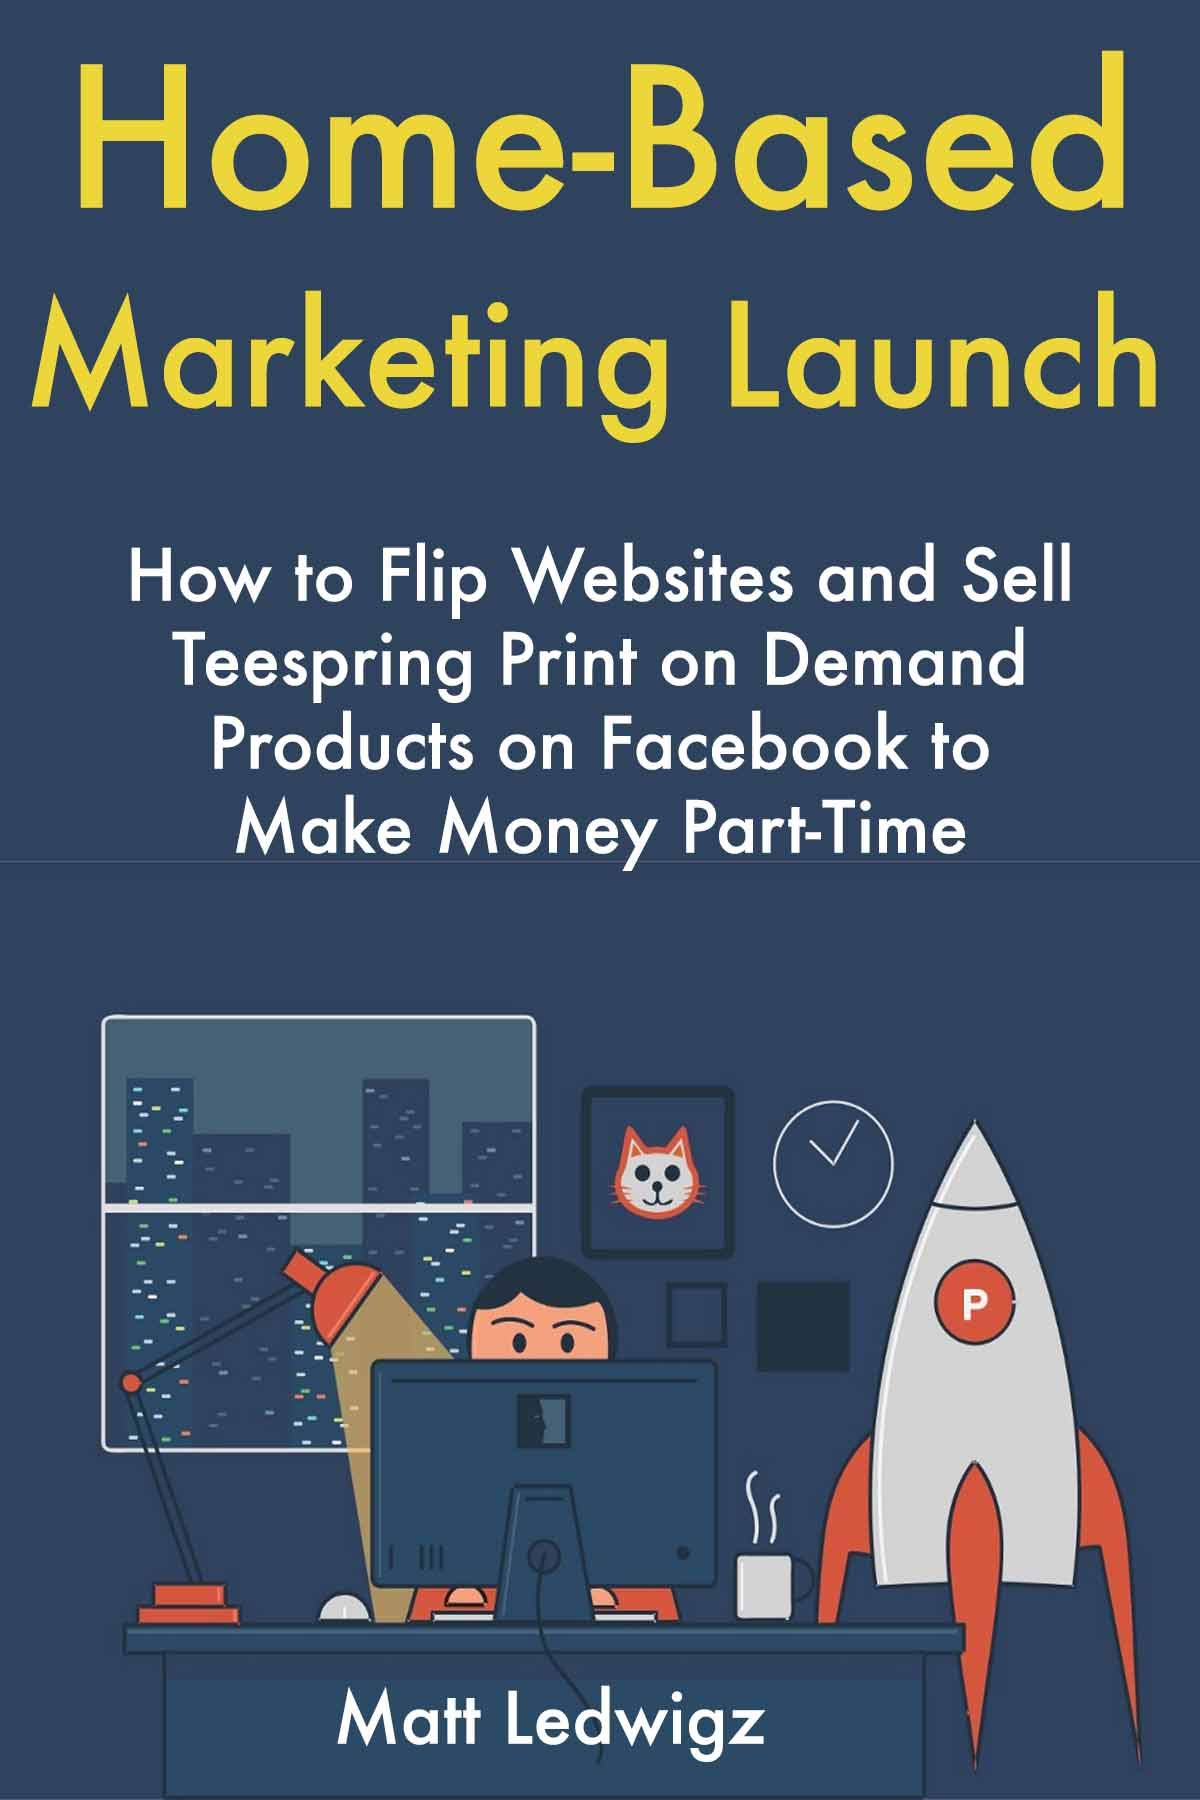 Home-Based Marketing Launch: How to Flip Websites and Sell Teespring Print on Demand Products on Facebook to Make Money Part-Time